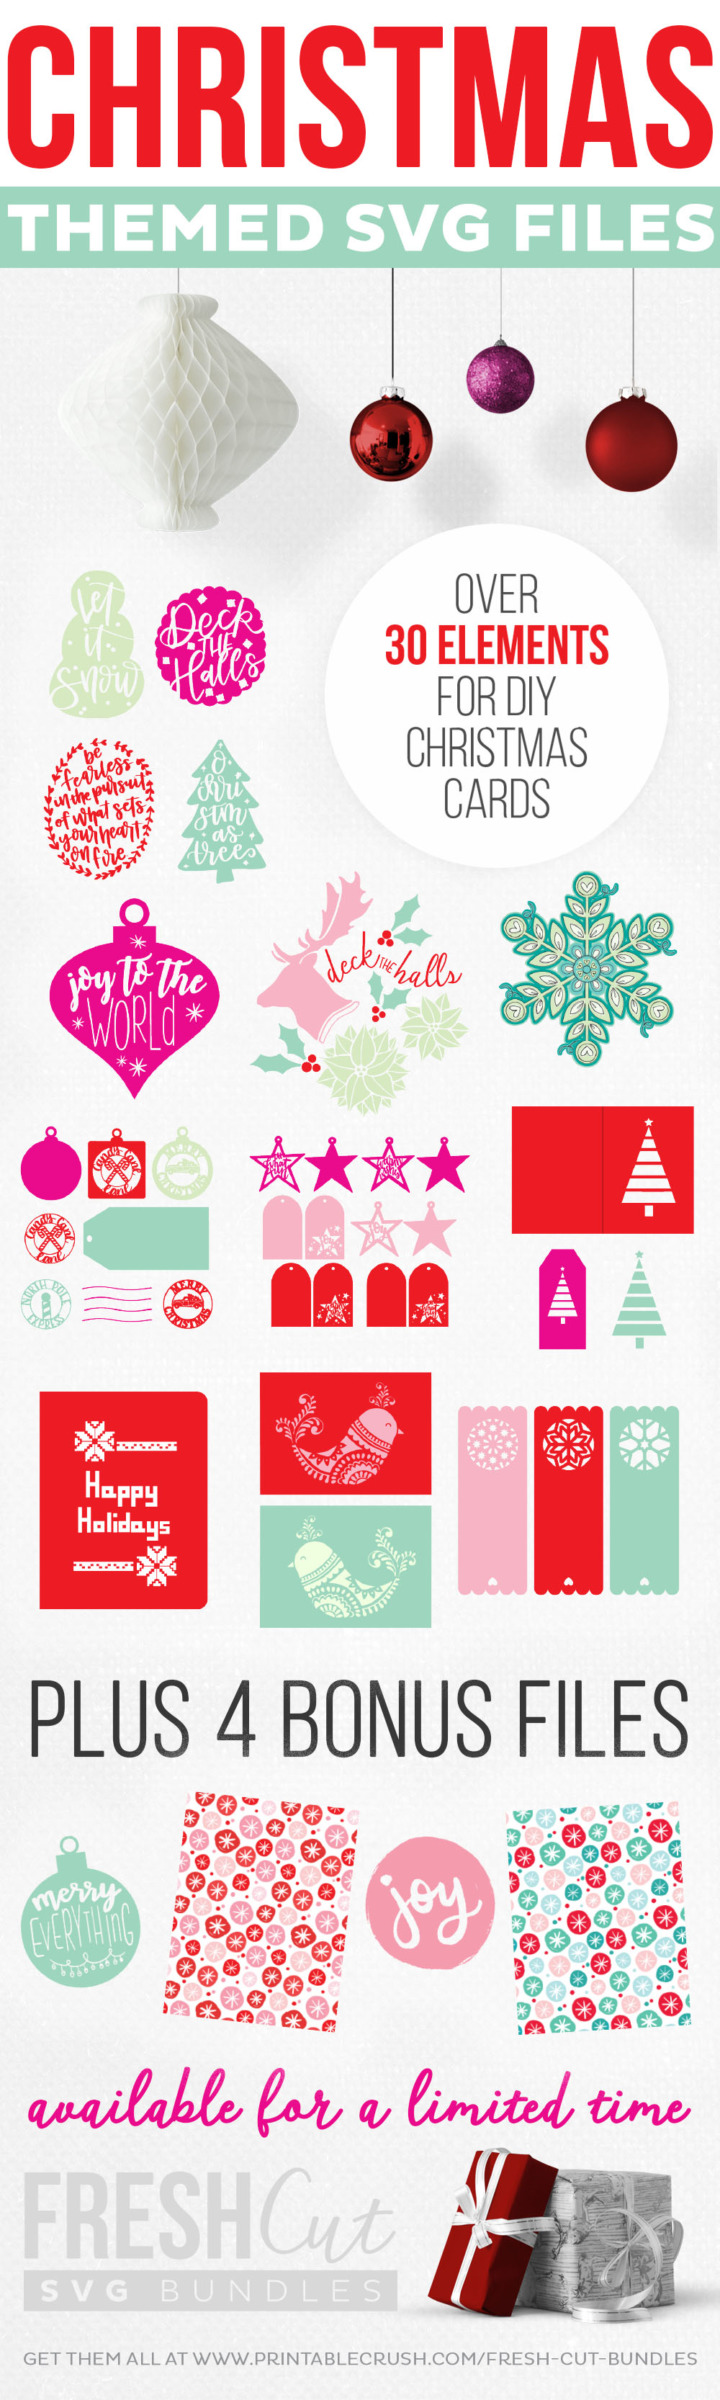 Rad Holiday Cards- SVG Cut Files available for a limited time in a bundle deal